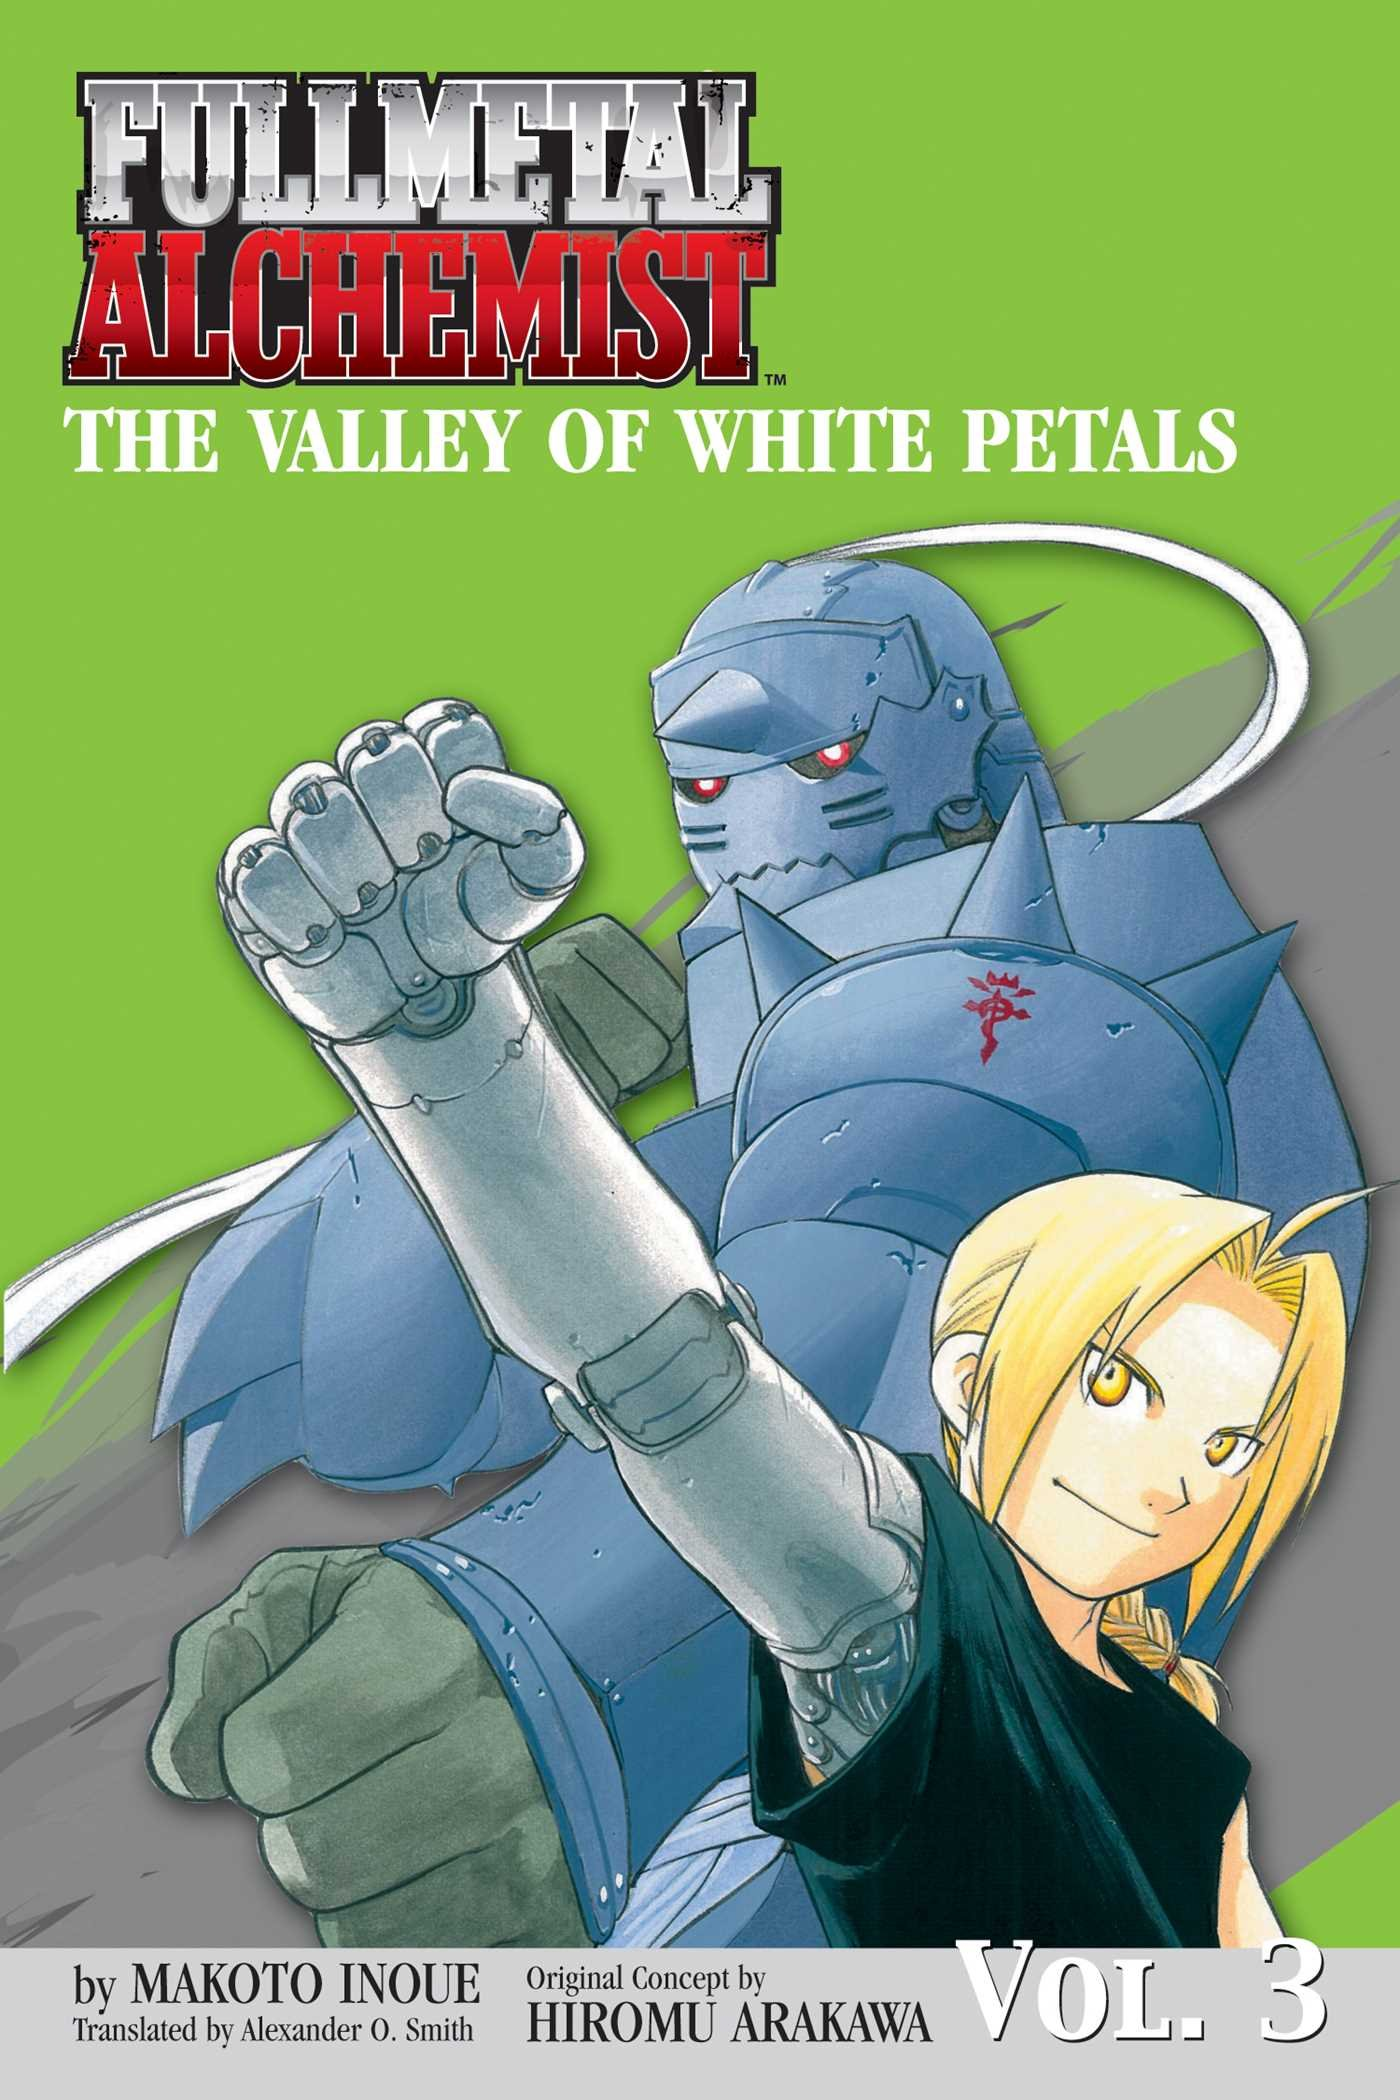 the valley of the white petals fullmetal alchemist novel volume the valley of the white petals fullmetal alchemist novel volume 3 makoto inoue 9781421504025 com books